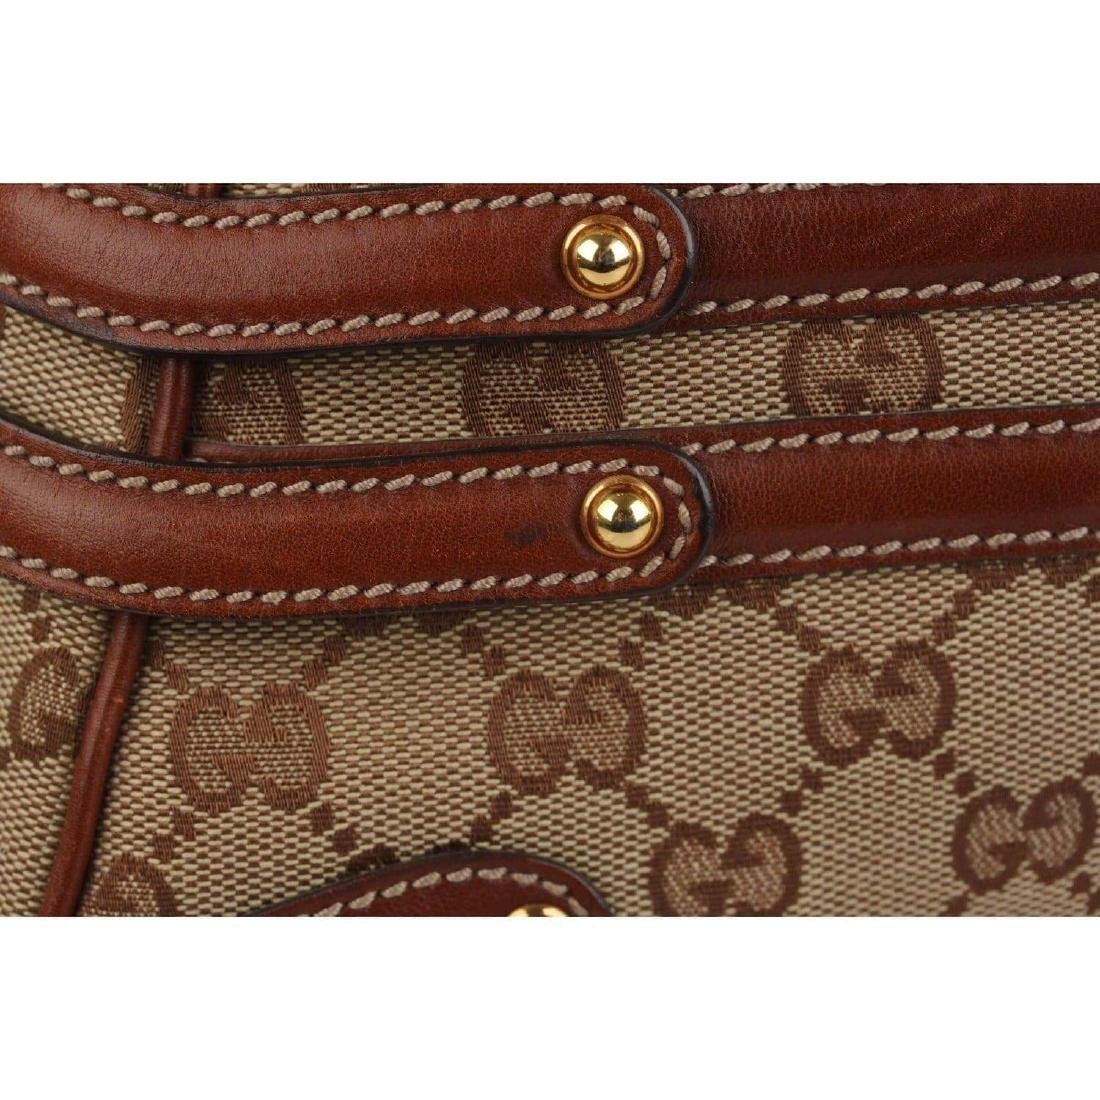 Gucci Wave Boston Bag Satchel - 8